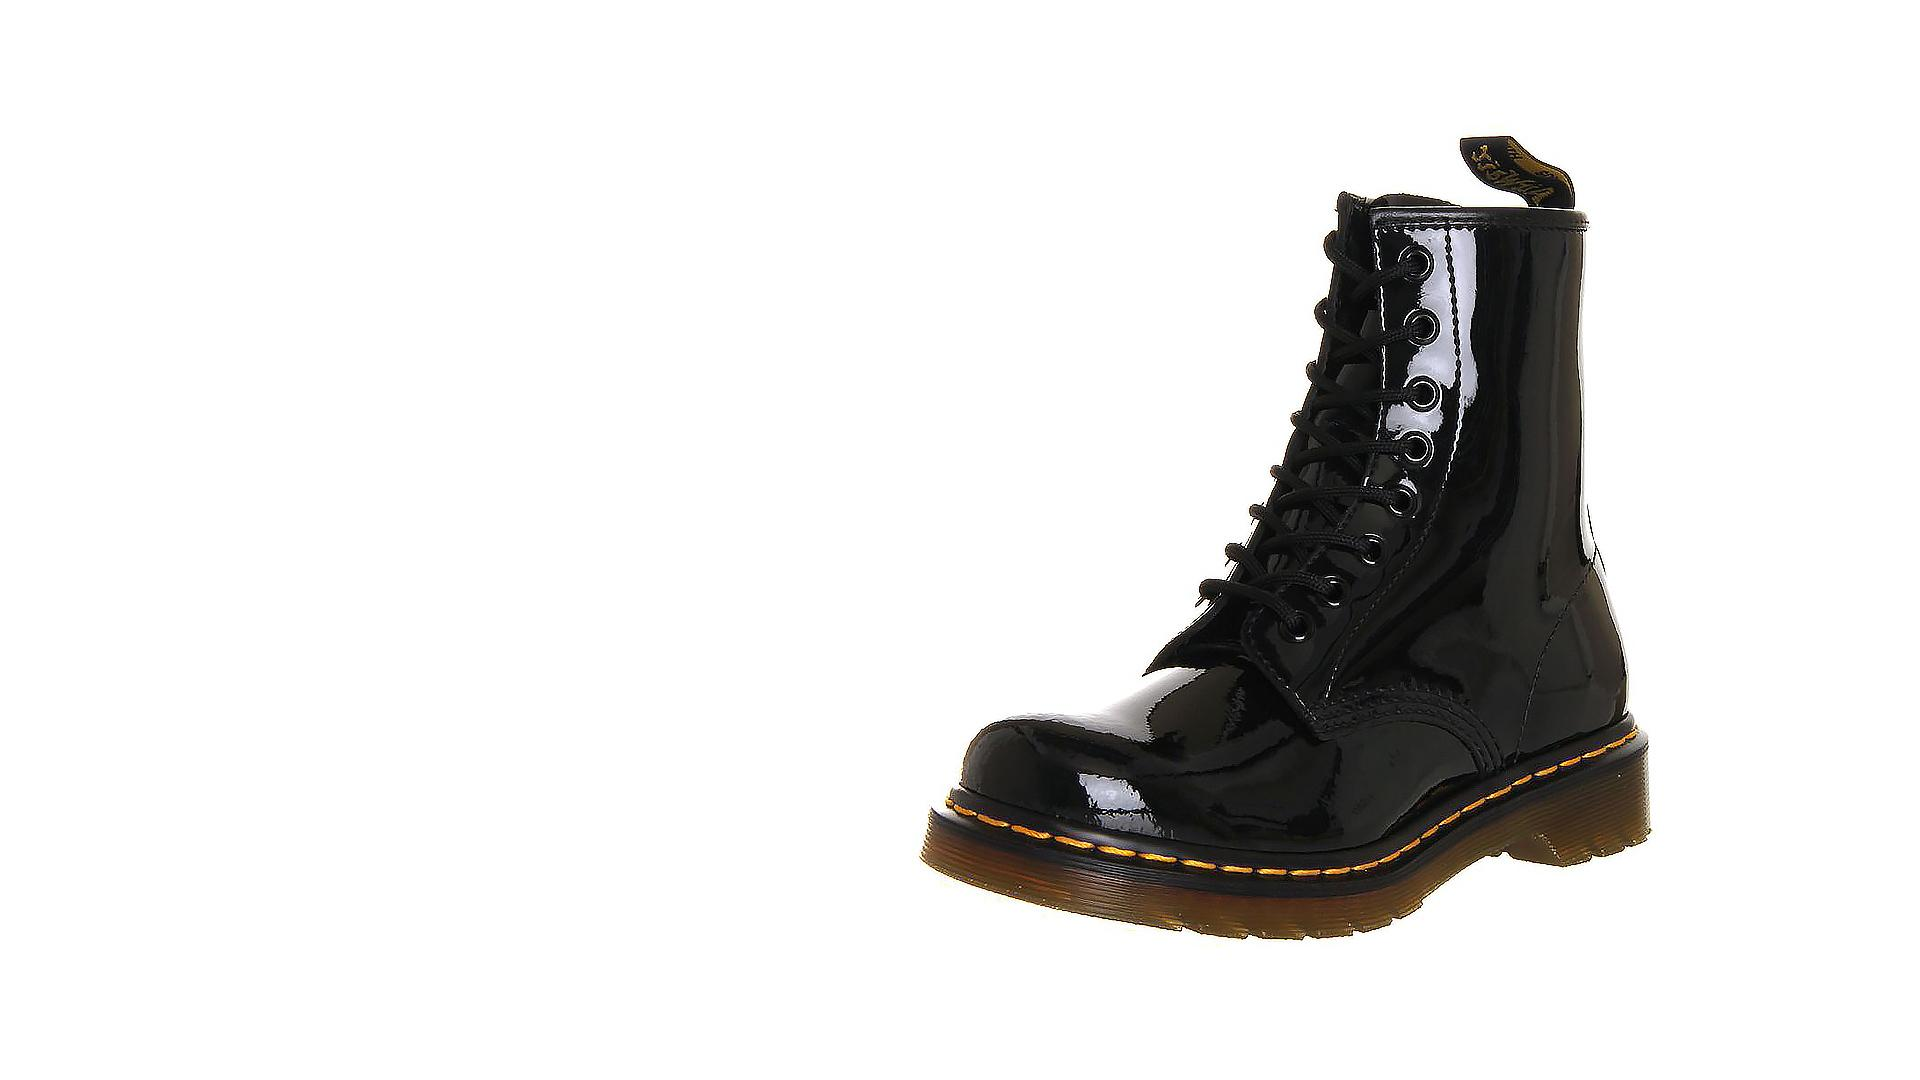 Eyelet  Boots - The Age Of Luna